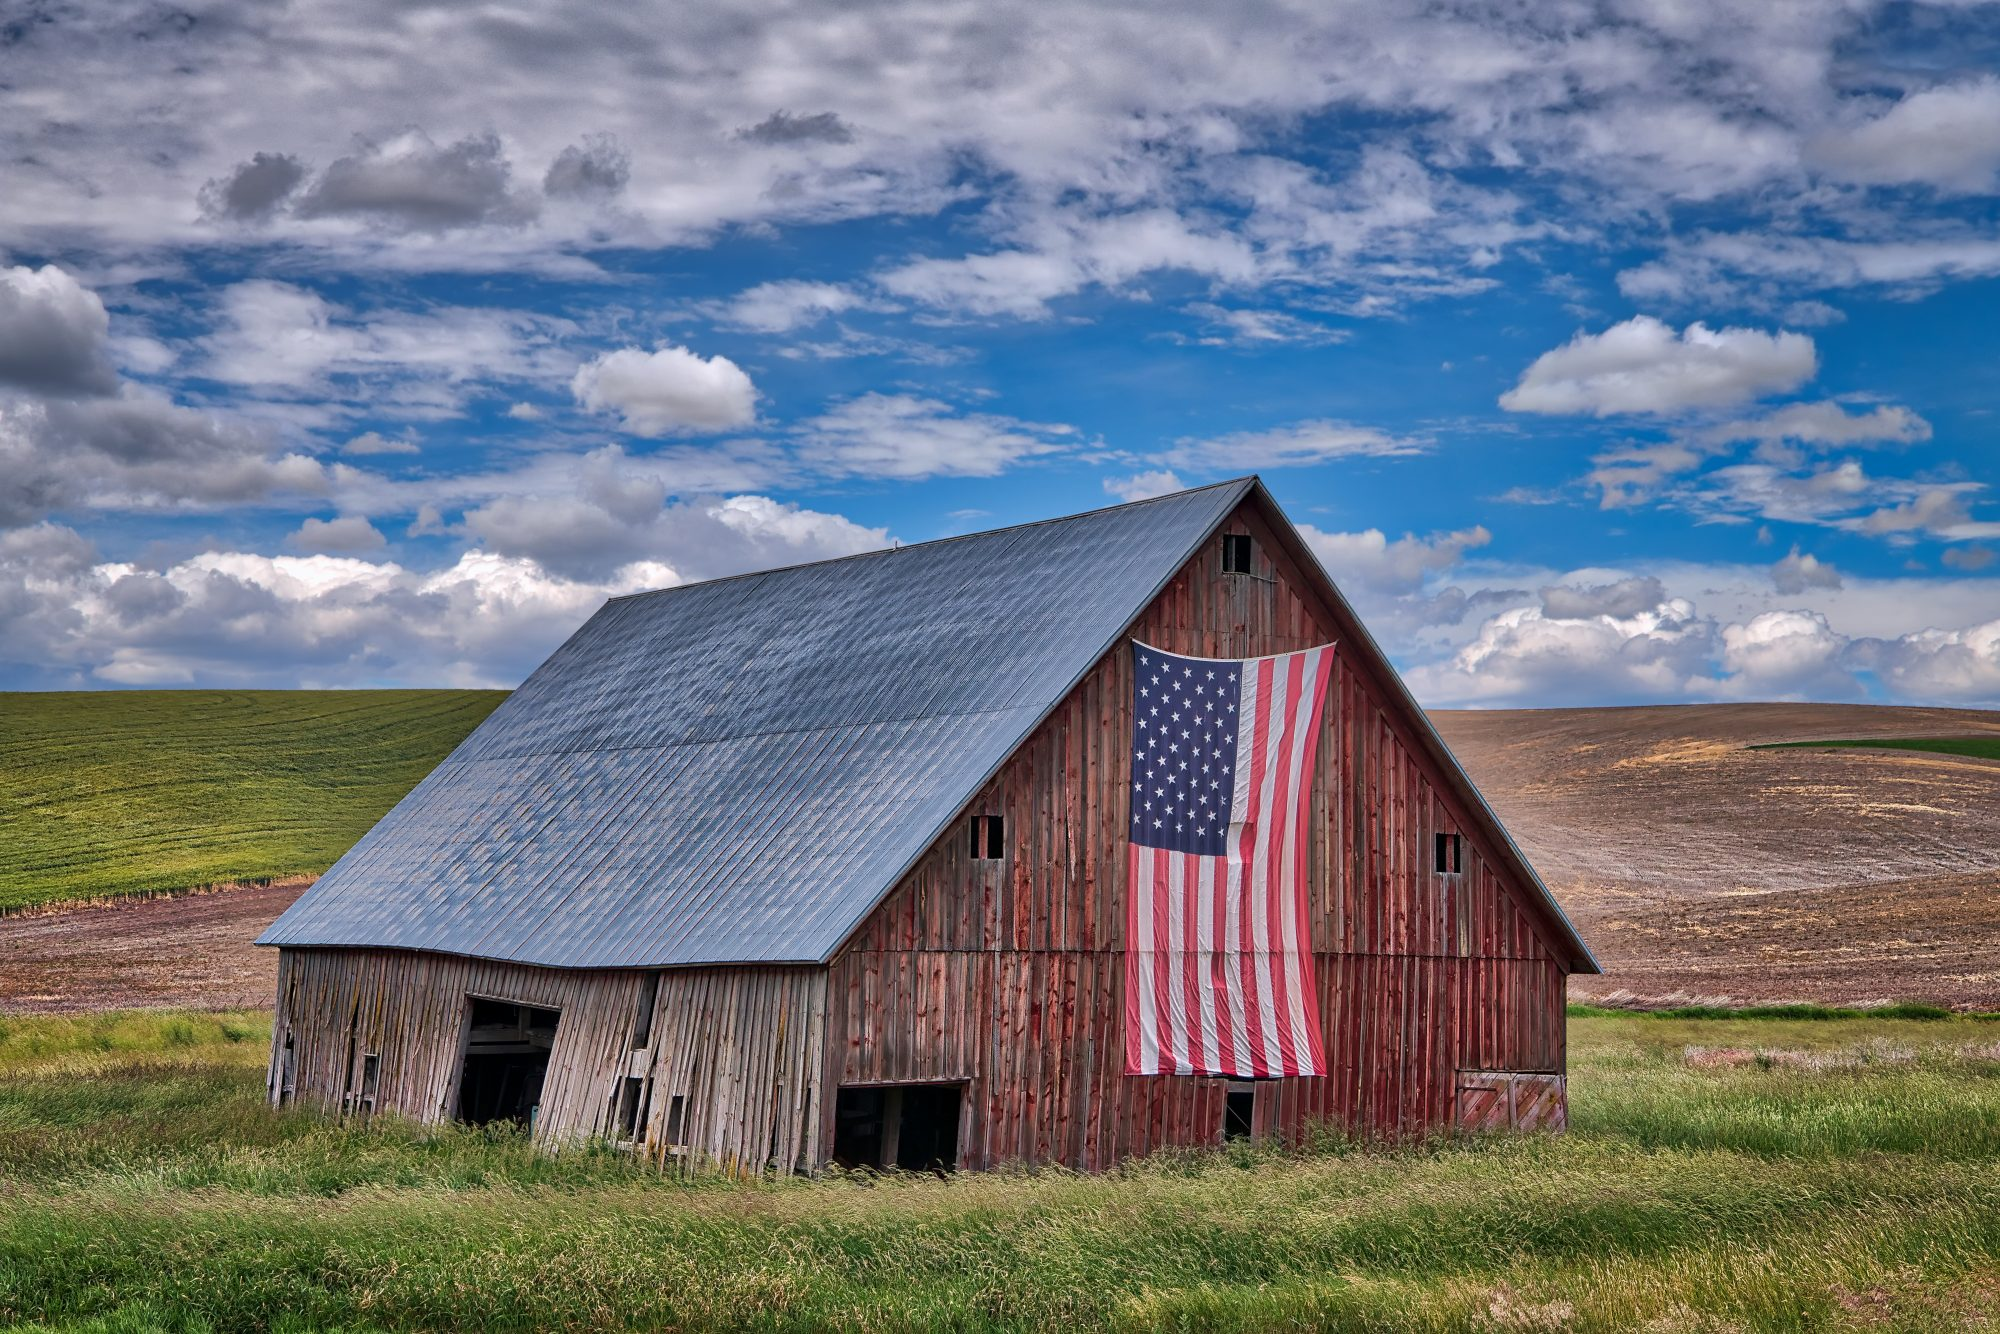 Farmhouse with American Flag